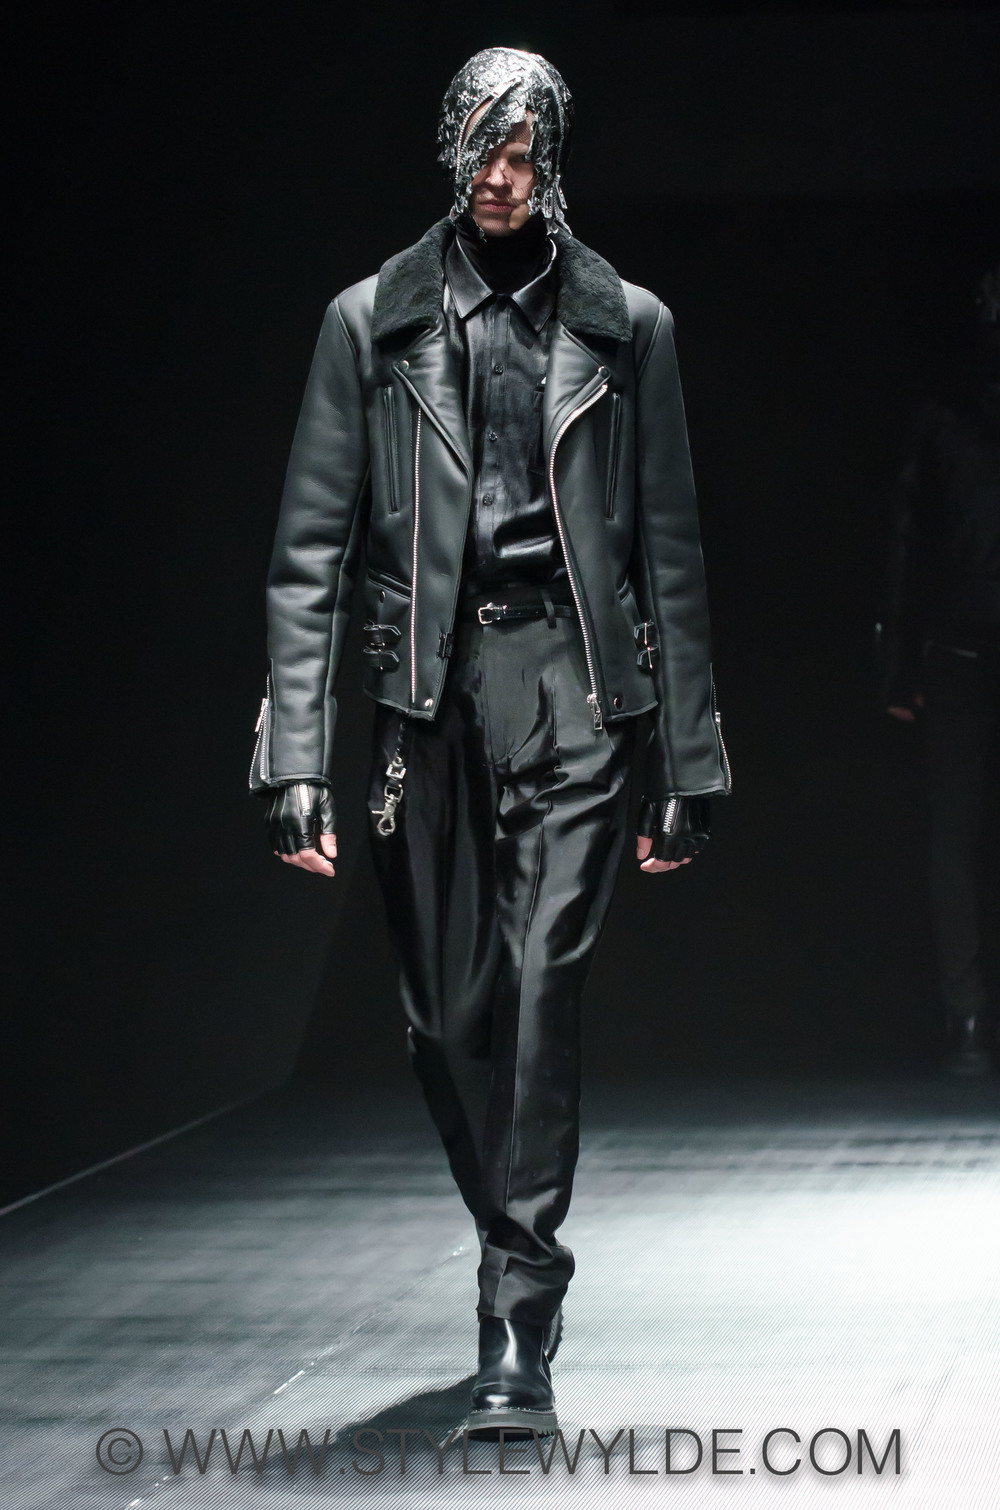 StyleWylde_99percentIS_AW14_edited (1 of 1)-11.jpg